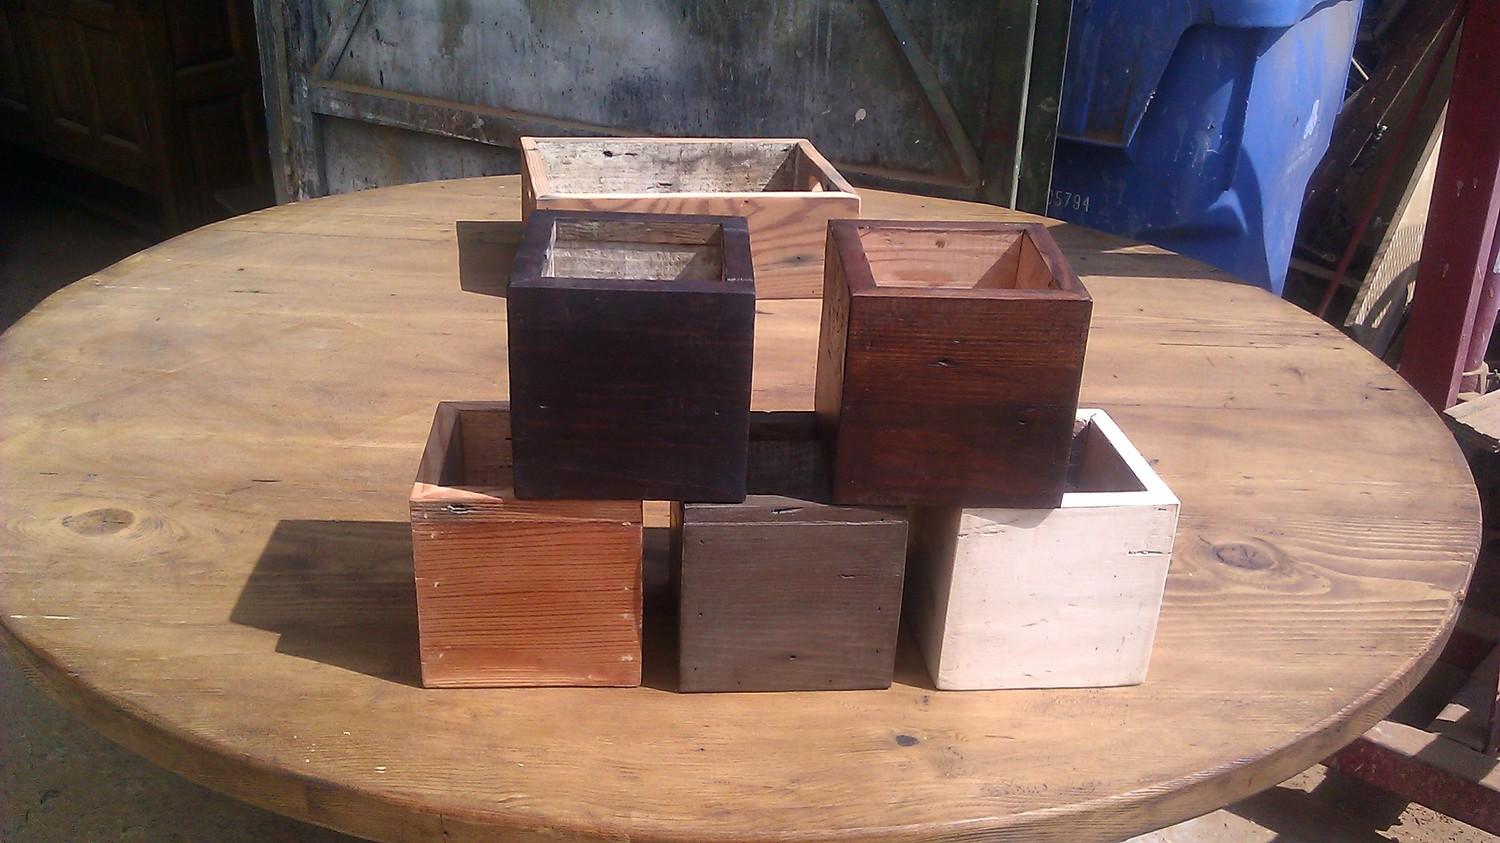 A selection of CC Design's wooden cubes for centerpieces shown in a variety of color finishes.